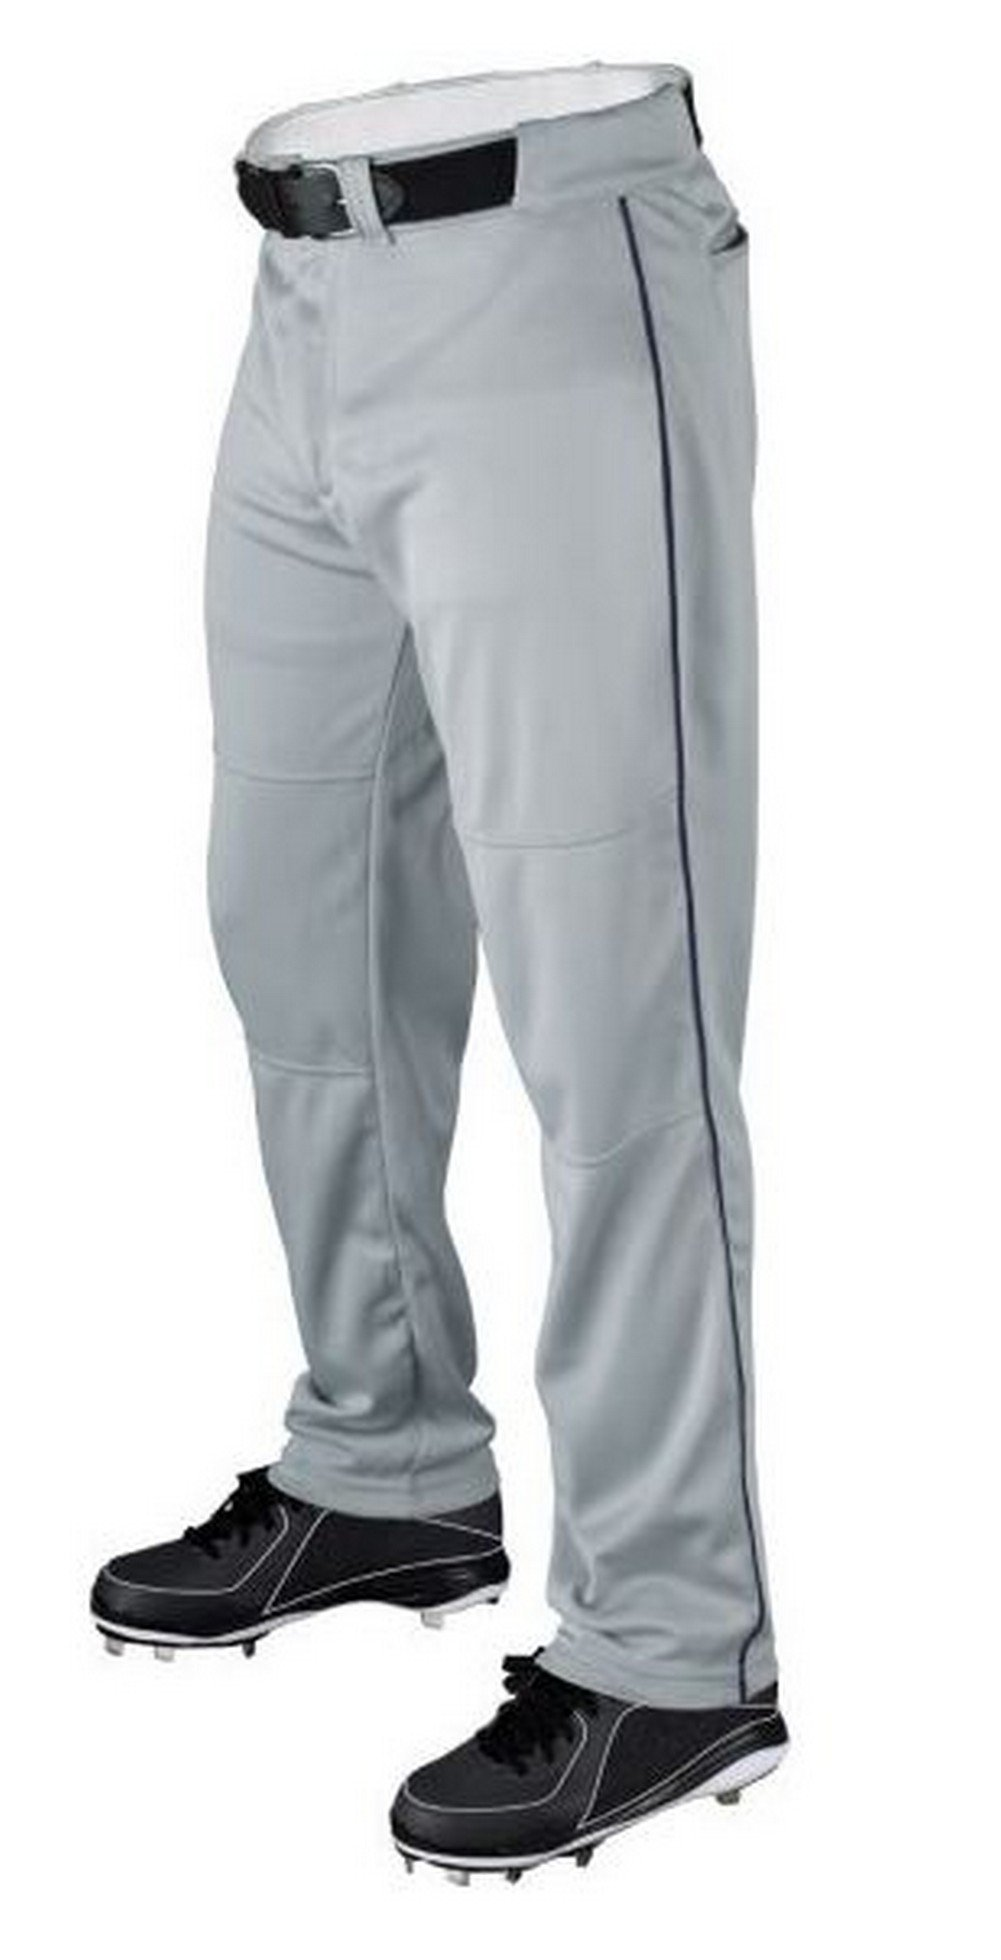 Wilson Youth Classic Relaxed Fit Piped Baseball Pant, Grey/Navy, Large by Wilson